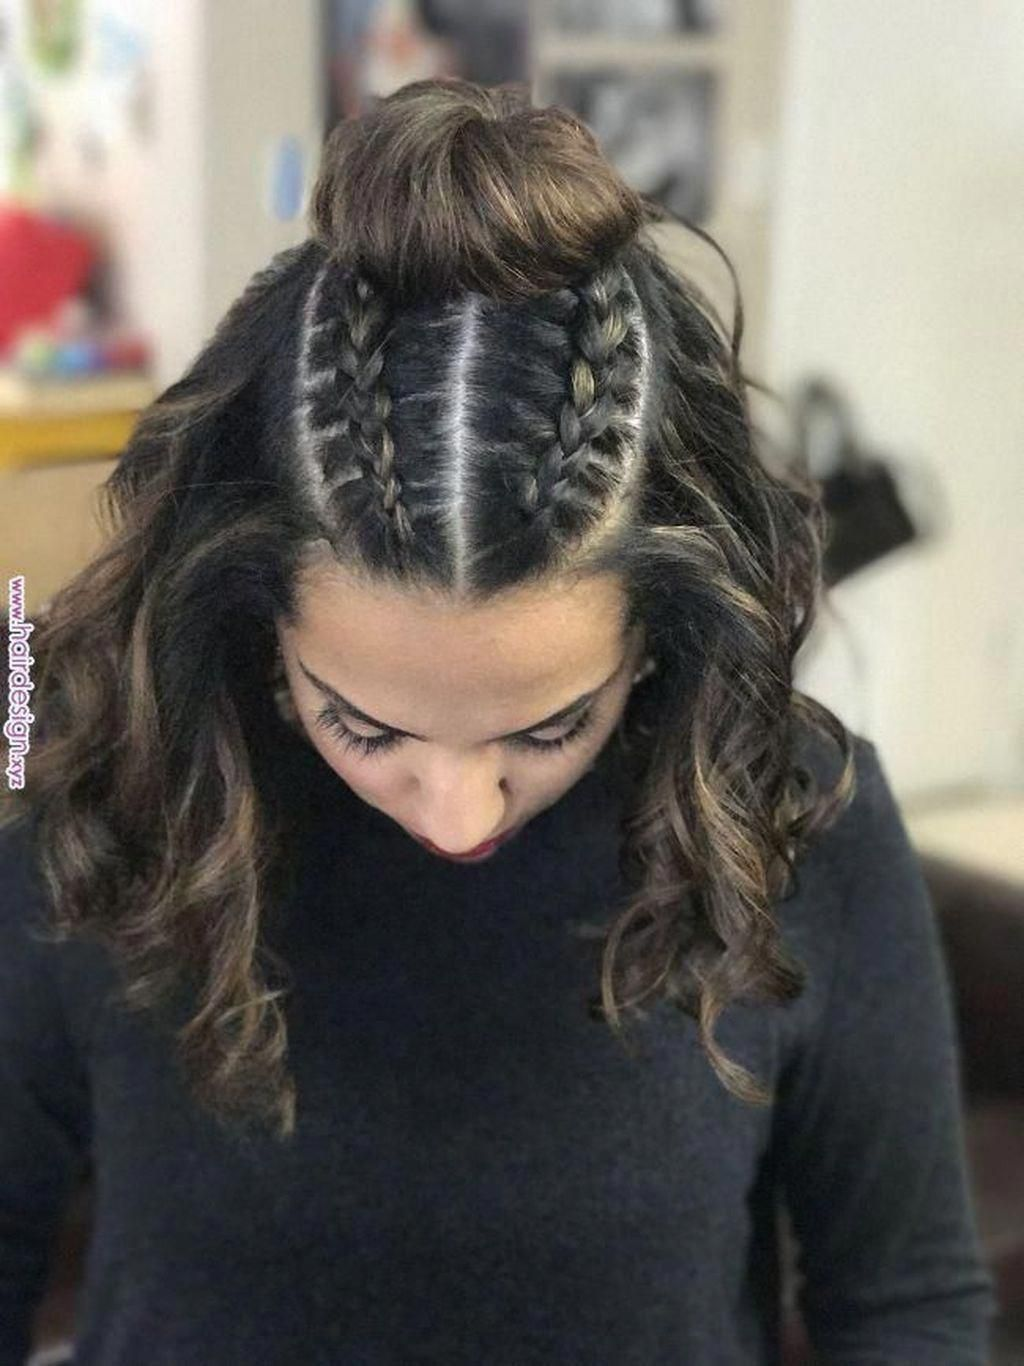 Amazing 20 Elegant Top Knots Hairstyles Ideas To Inspire Next Hair Style Braids Hair Styles Thick Hair Styles Hair Knot